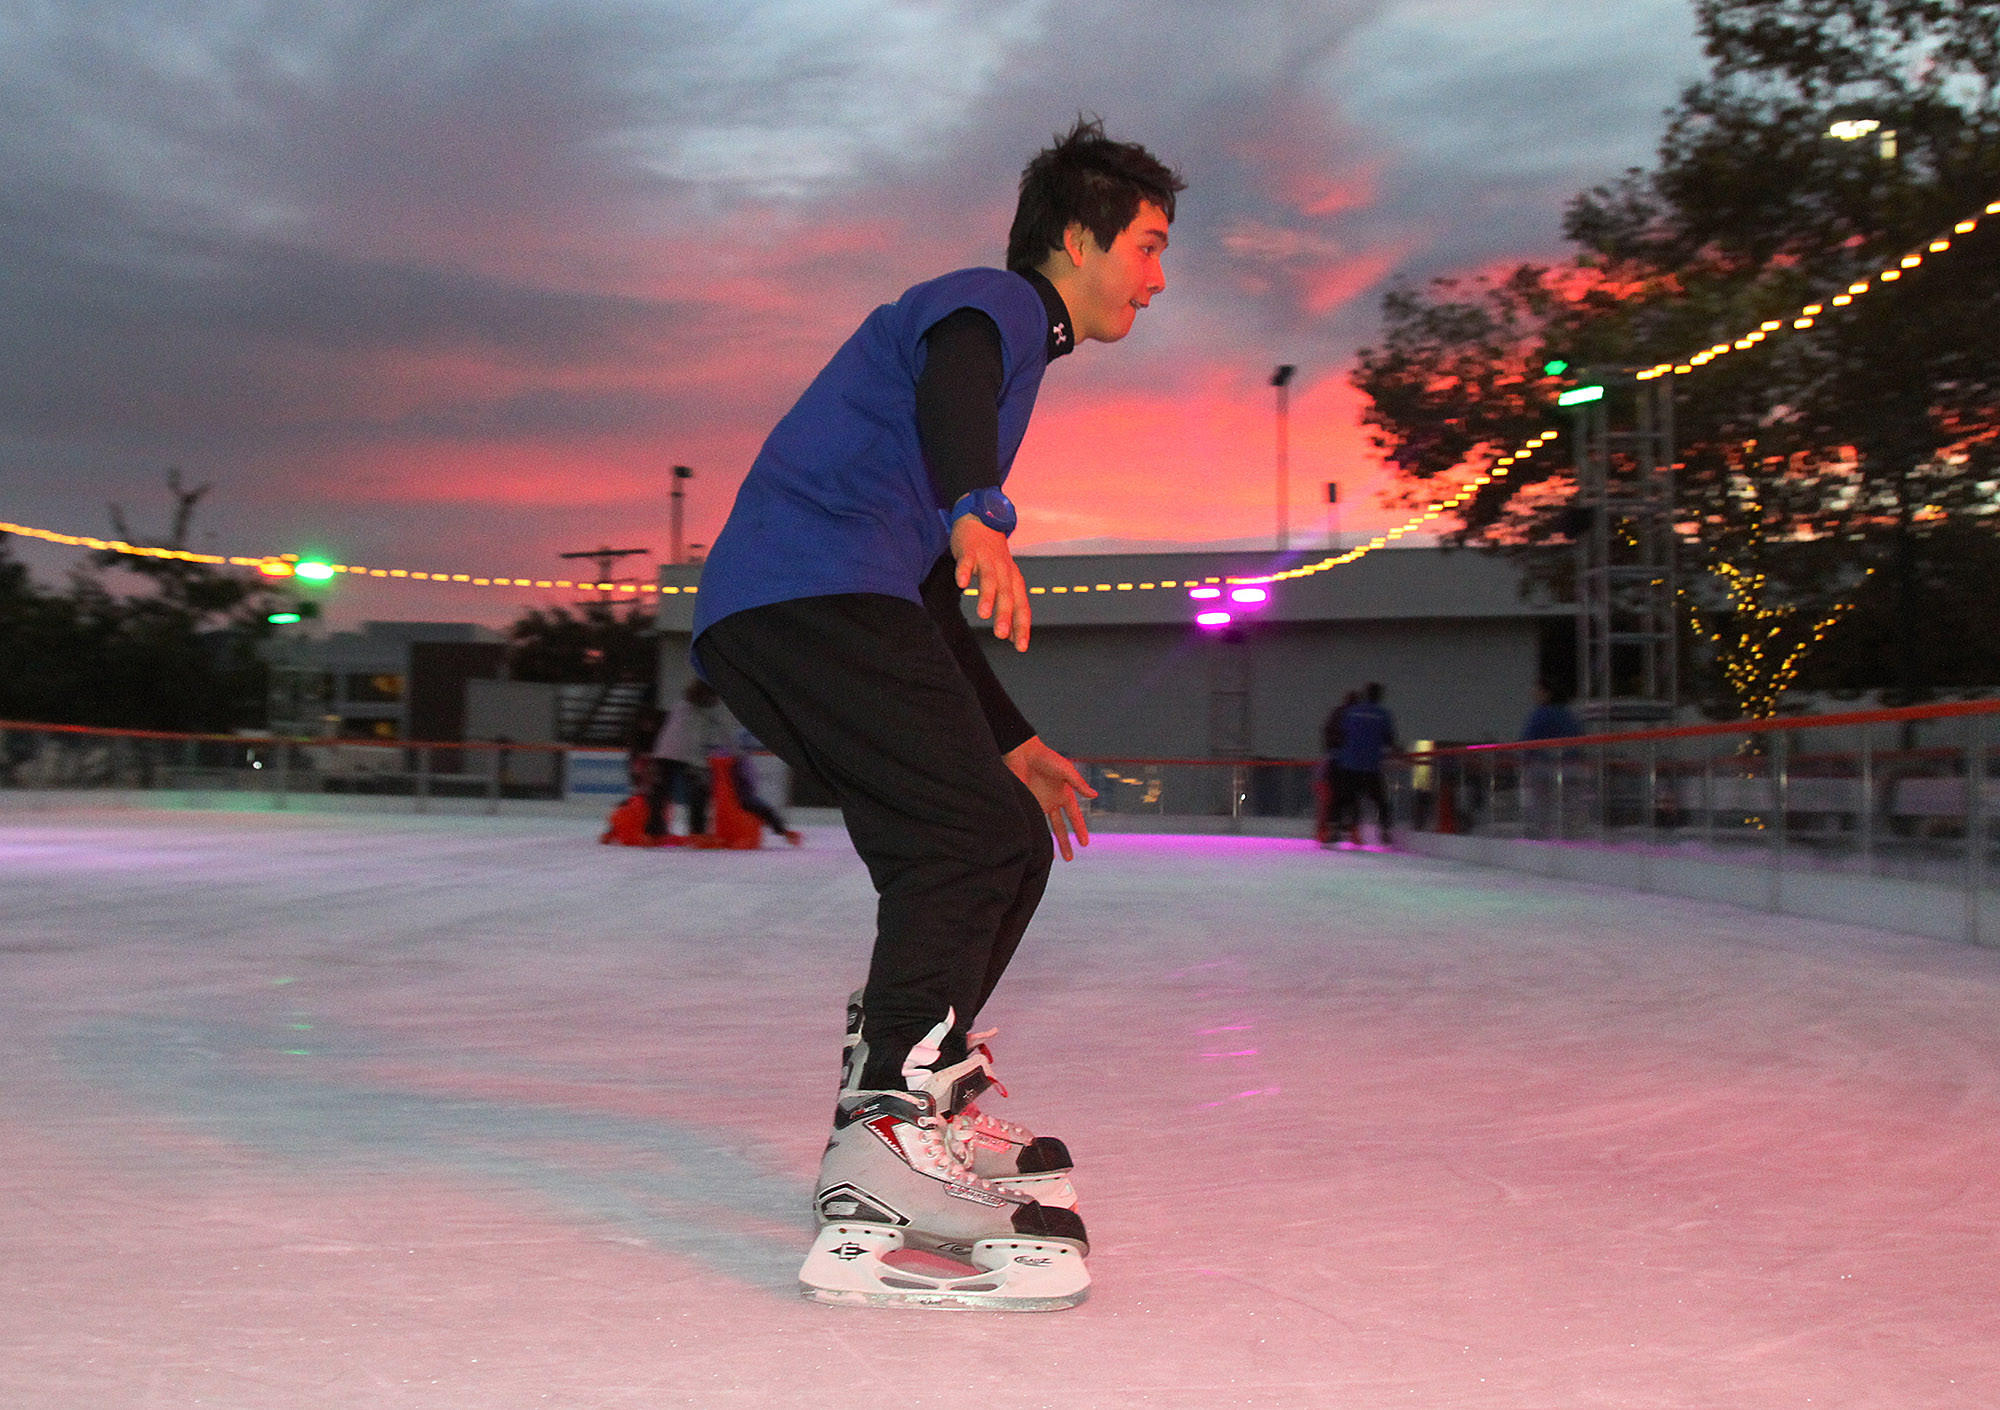 Jeremy Steele, 19, of Burbank, is a skate guard with Skate America, doing some very fast laps on an ice rink behind Burbank City Hall on Friday, November 22, 2013.